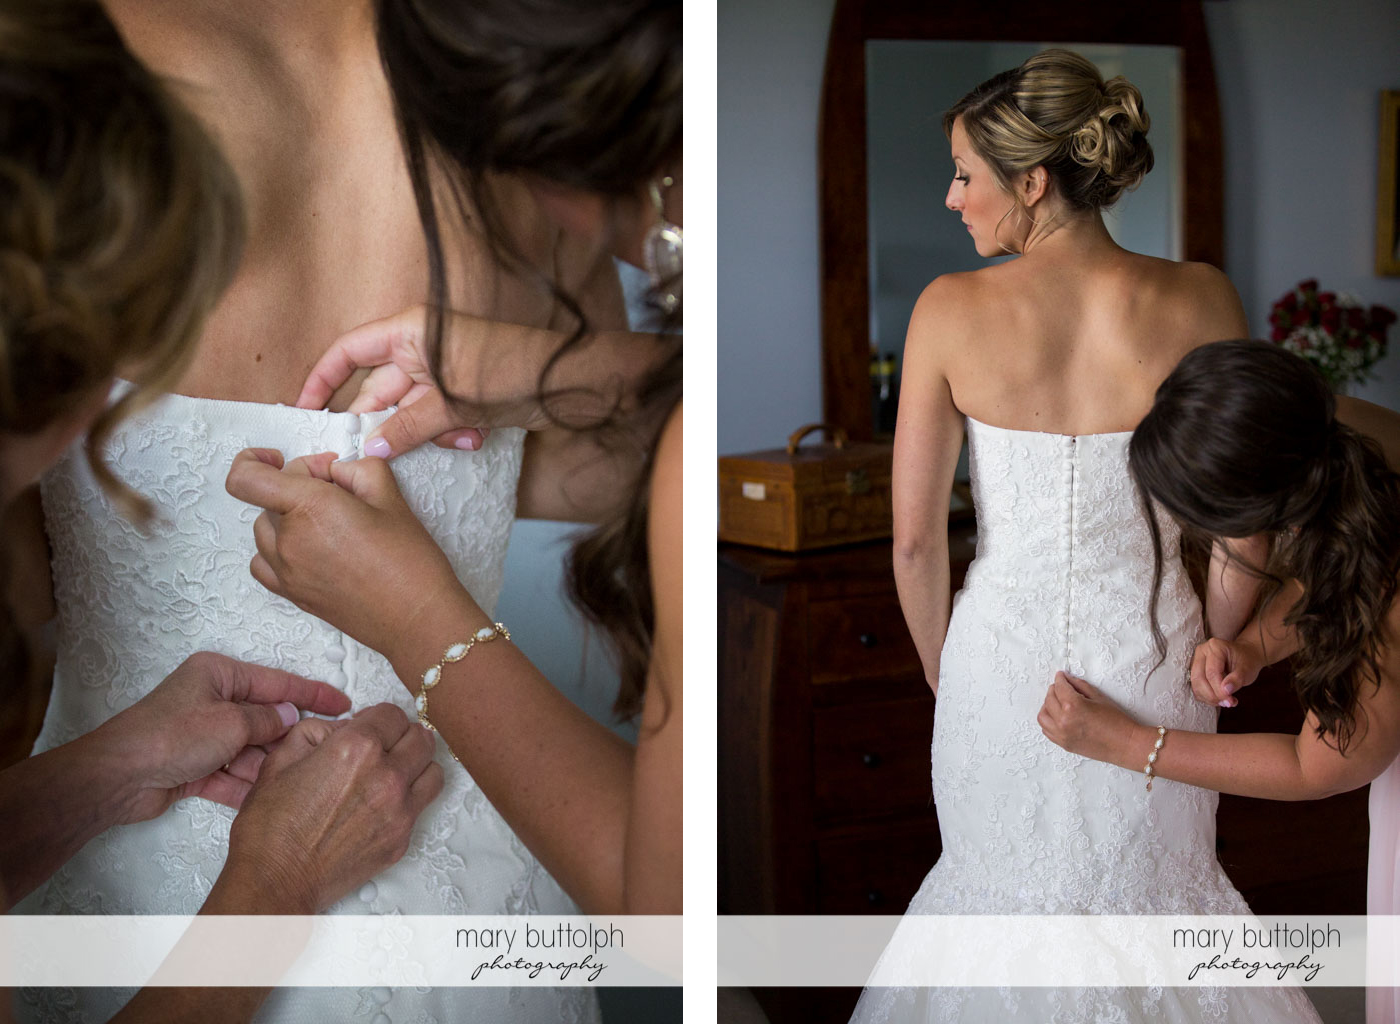 Friends make final adjustments on the bride's wedding dress at Skaneateles Country Club Wedding